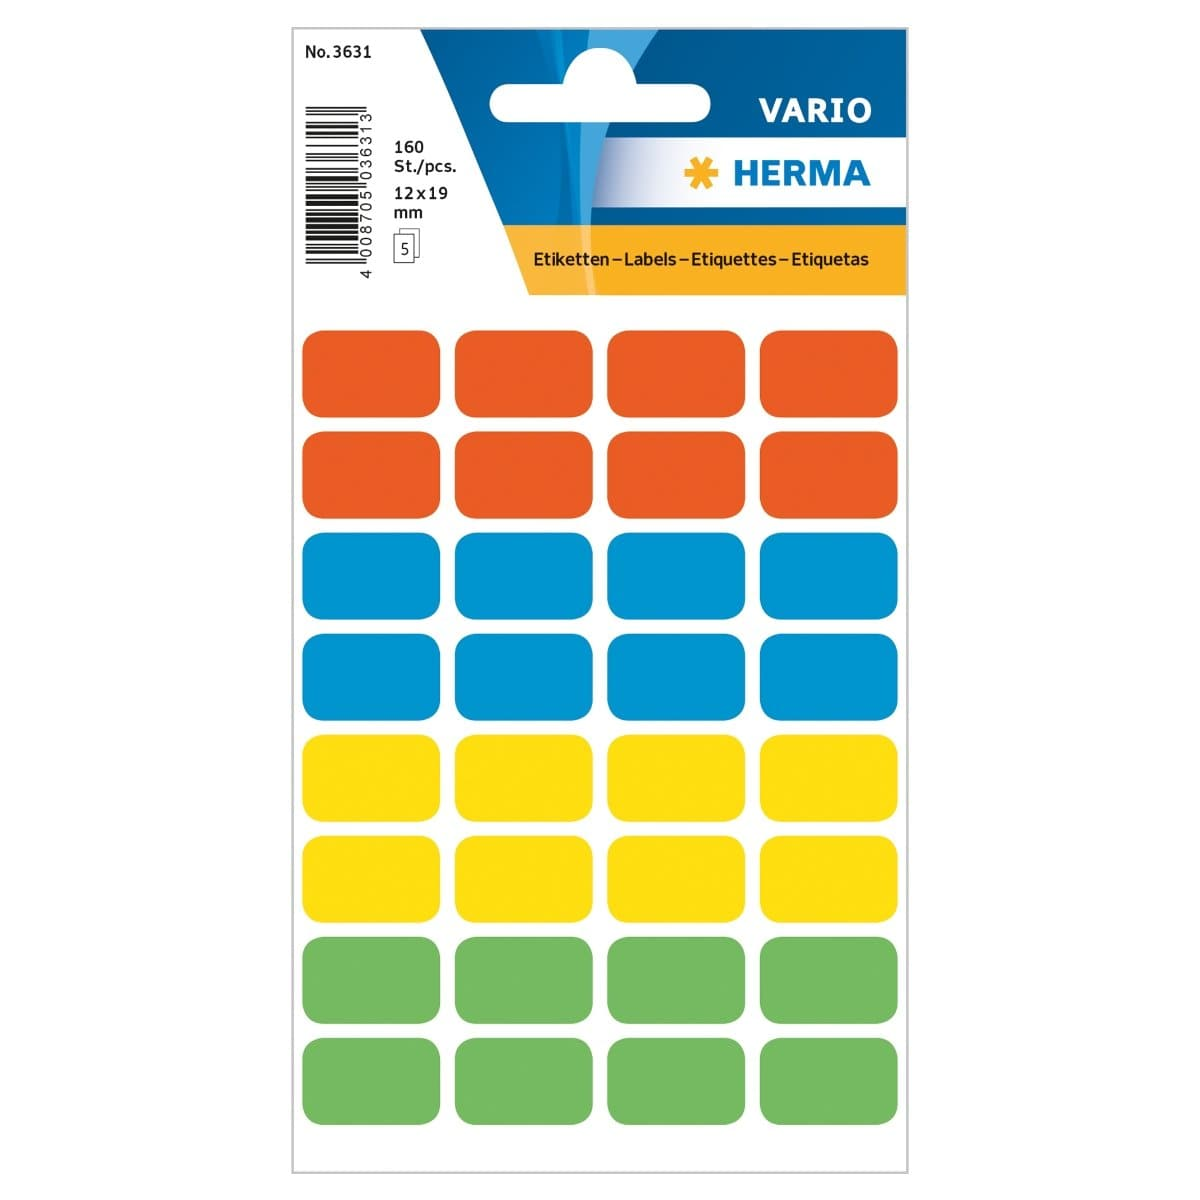 Herma Vario Sticker Labels, 12 x 19 mm, 160/pack, Assorted Colors